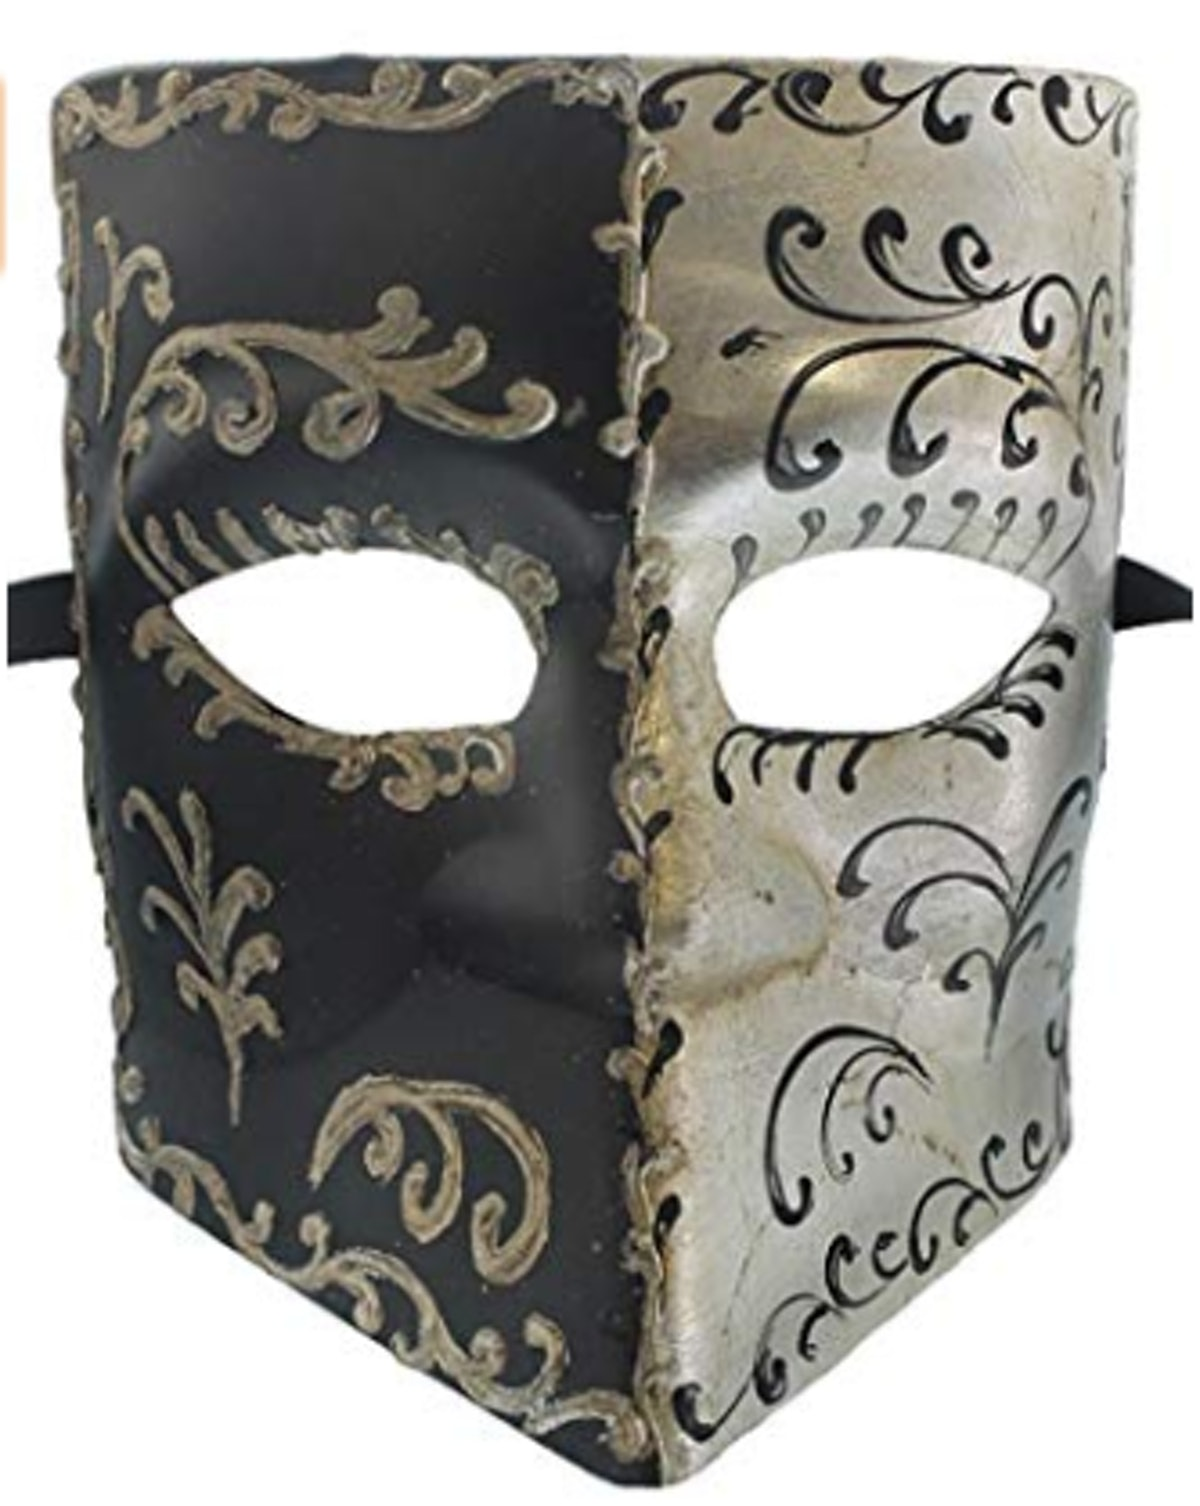 Two Faced Silver Black Tone Finish Mask